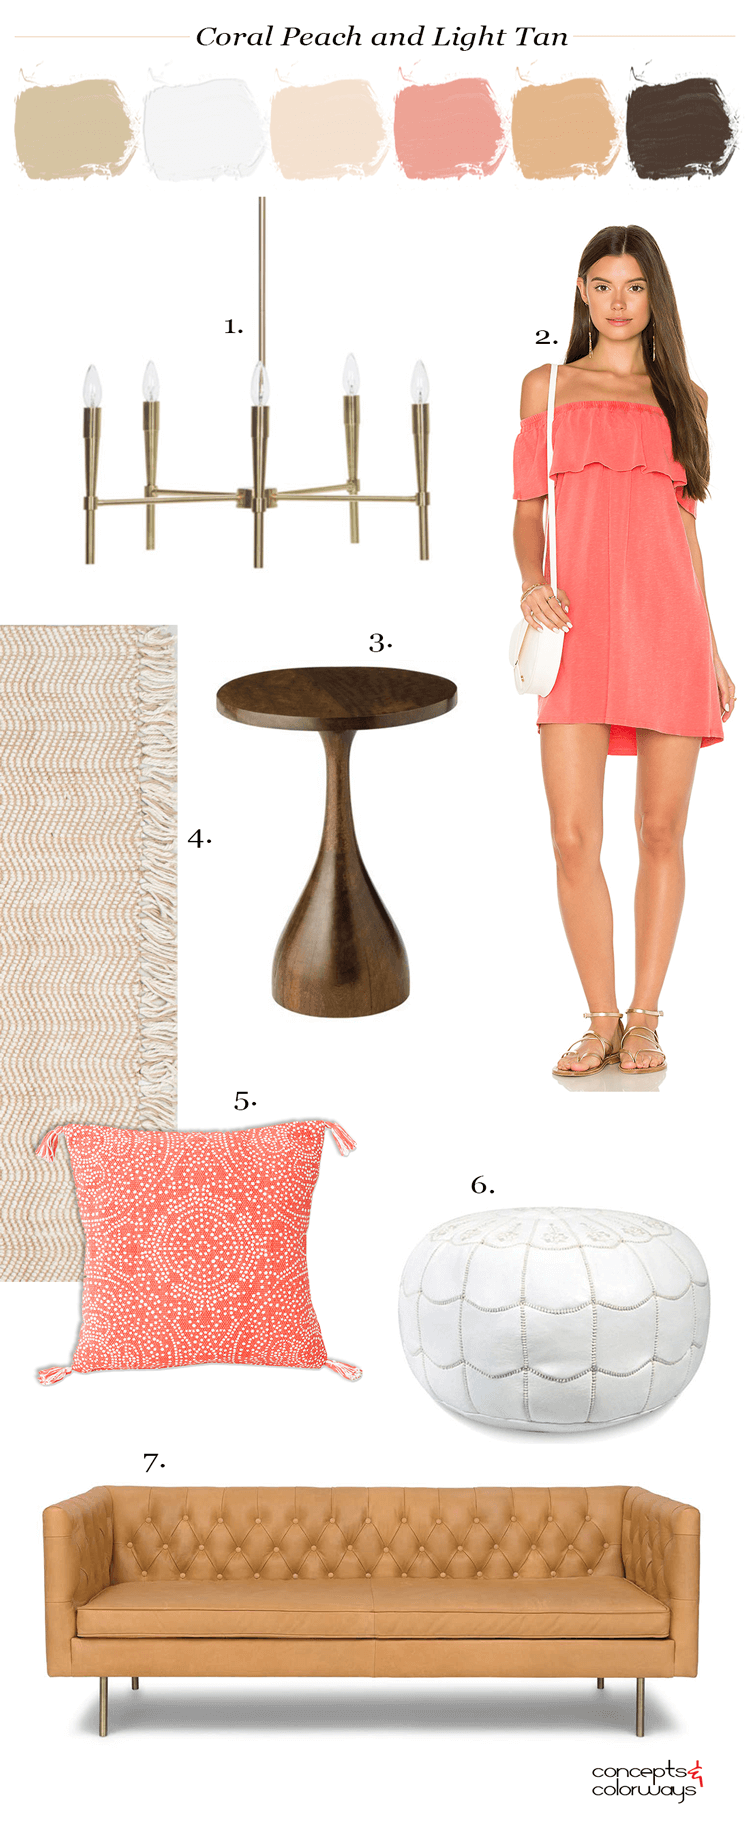 coral dress, coral peach, tan leather sofa, tan leather couch, peach pillow, peach throw pillows, coral pillows, coral throw pillows, gold modern chandelier, white moroccan pouf, leather pouf, moroccan pouf, jute rug, round side table, modern side table